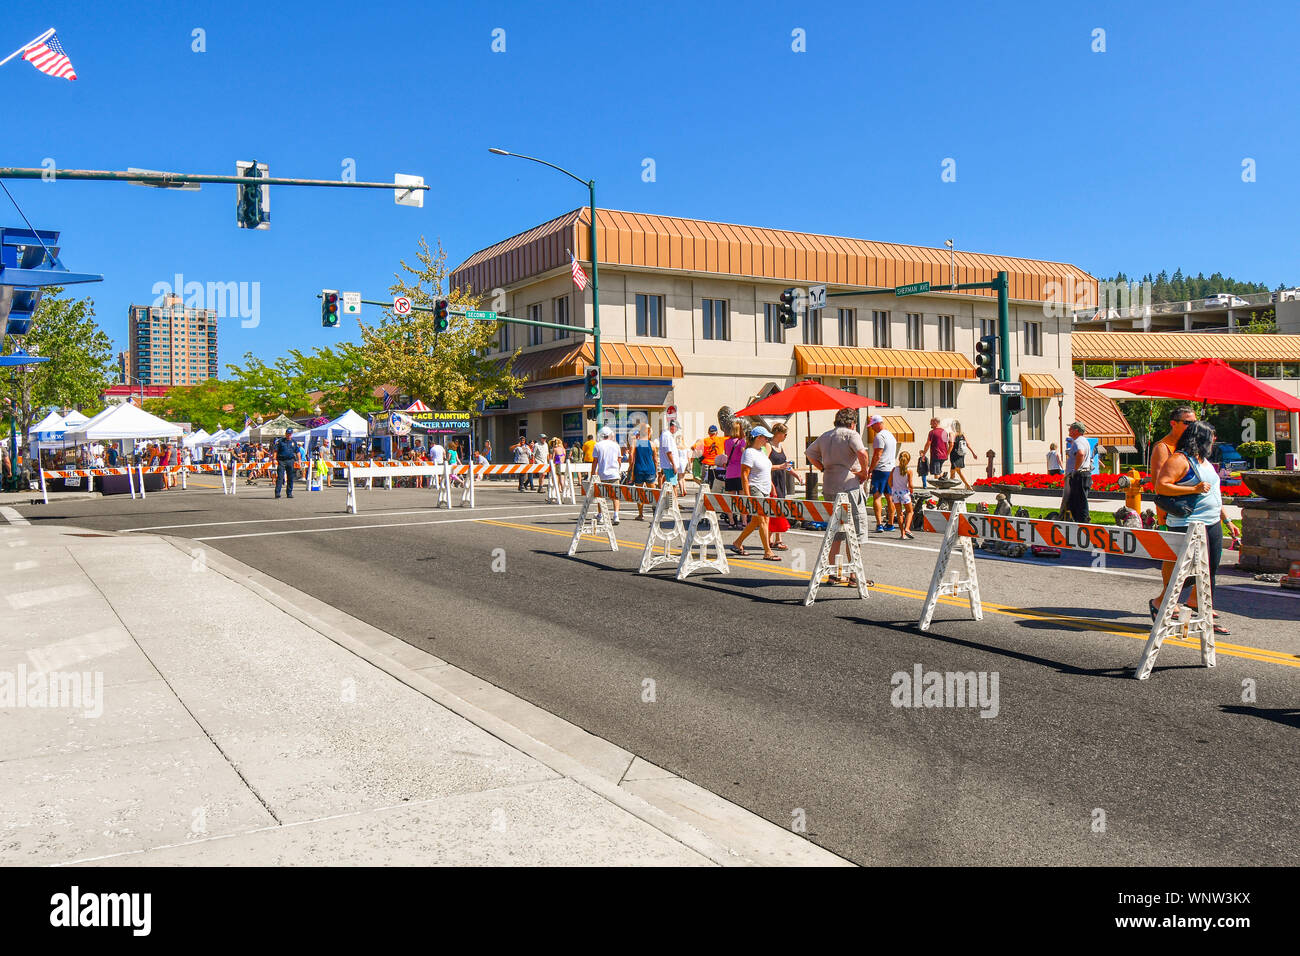 Tourists and local Idahoans enjoy the annual street and art fair in the Inland Northwest town of Coeur d'Alene, Idaho, USA Stock Photo